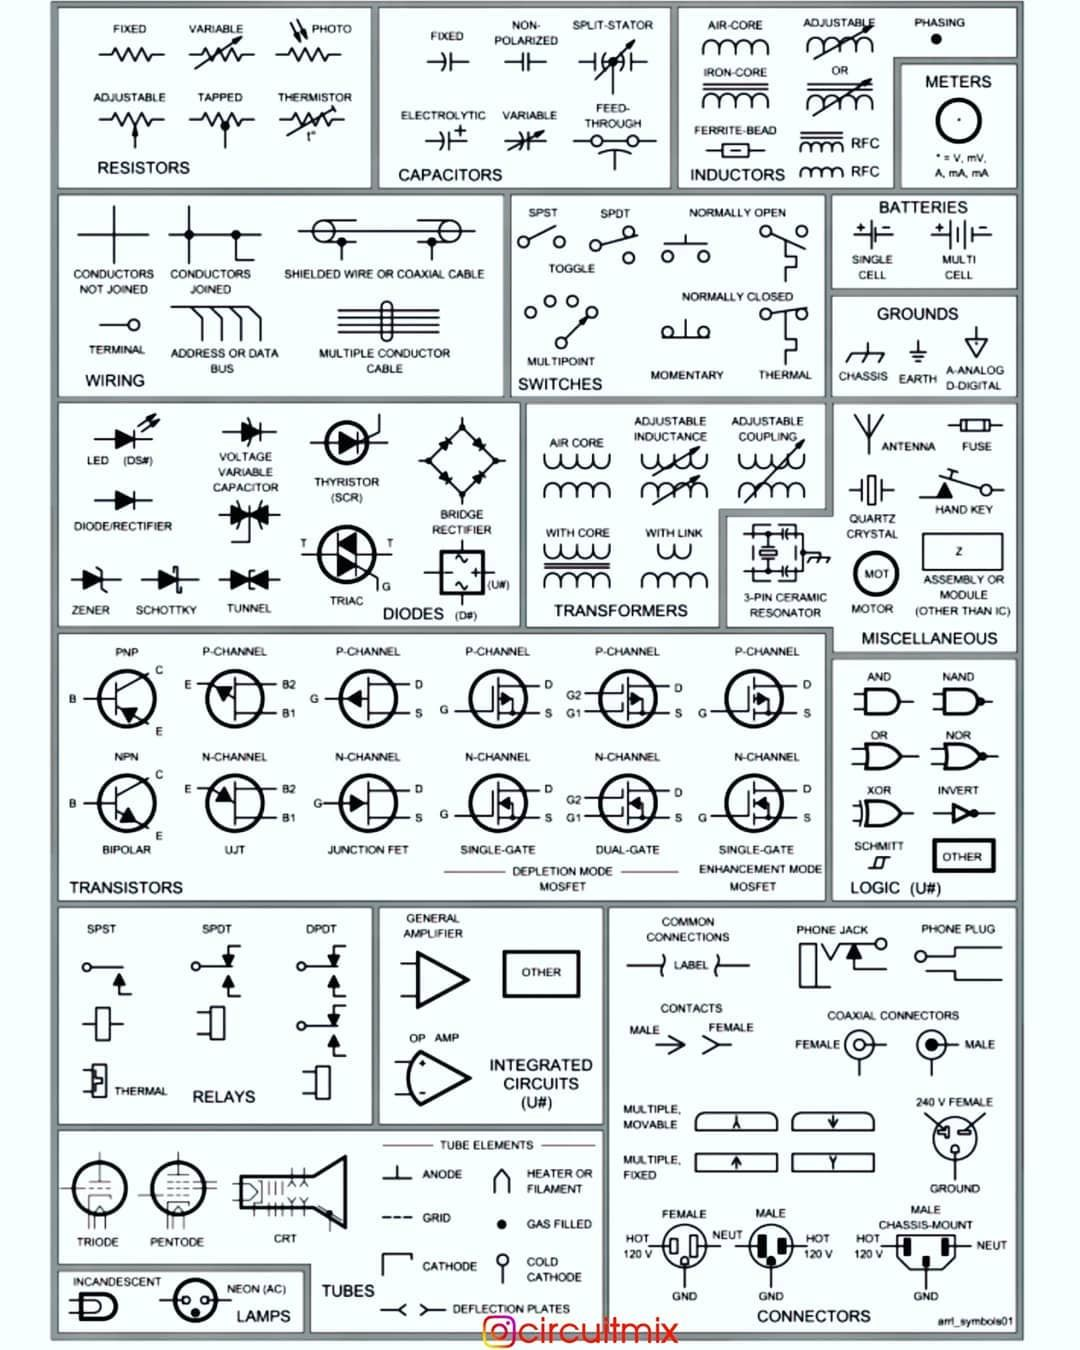 Circuitmix Circuitmix En Instagram Useful Electronics Components Symbols Save This Post Share And Tag Your Friends Resistor Ingenieria